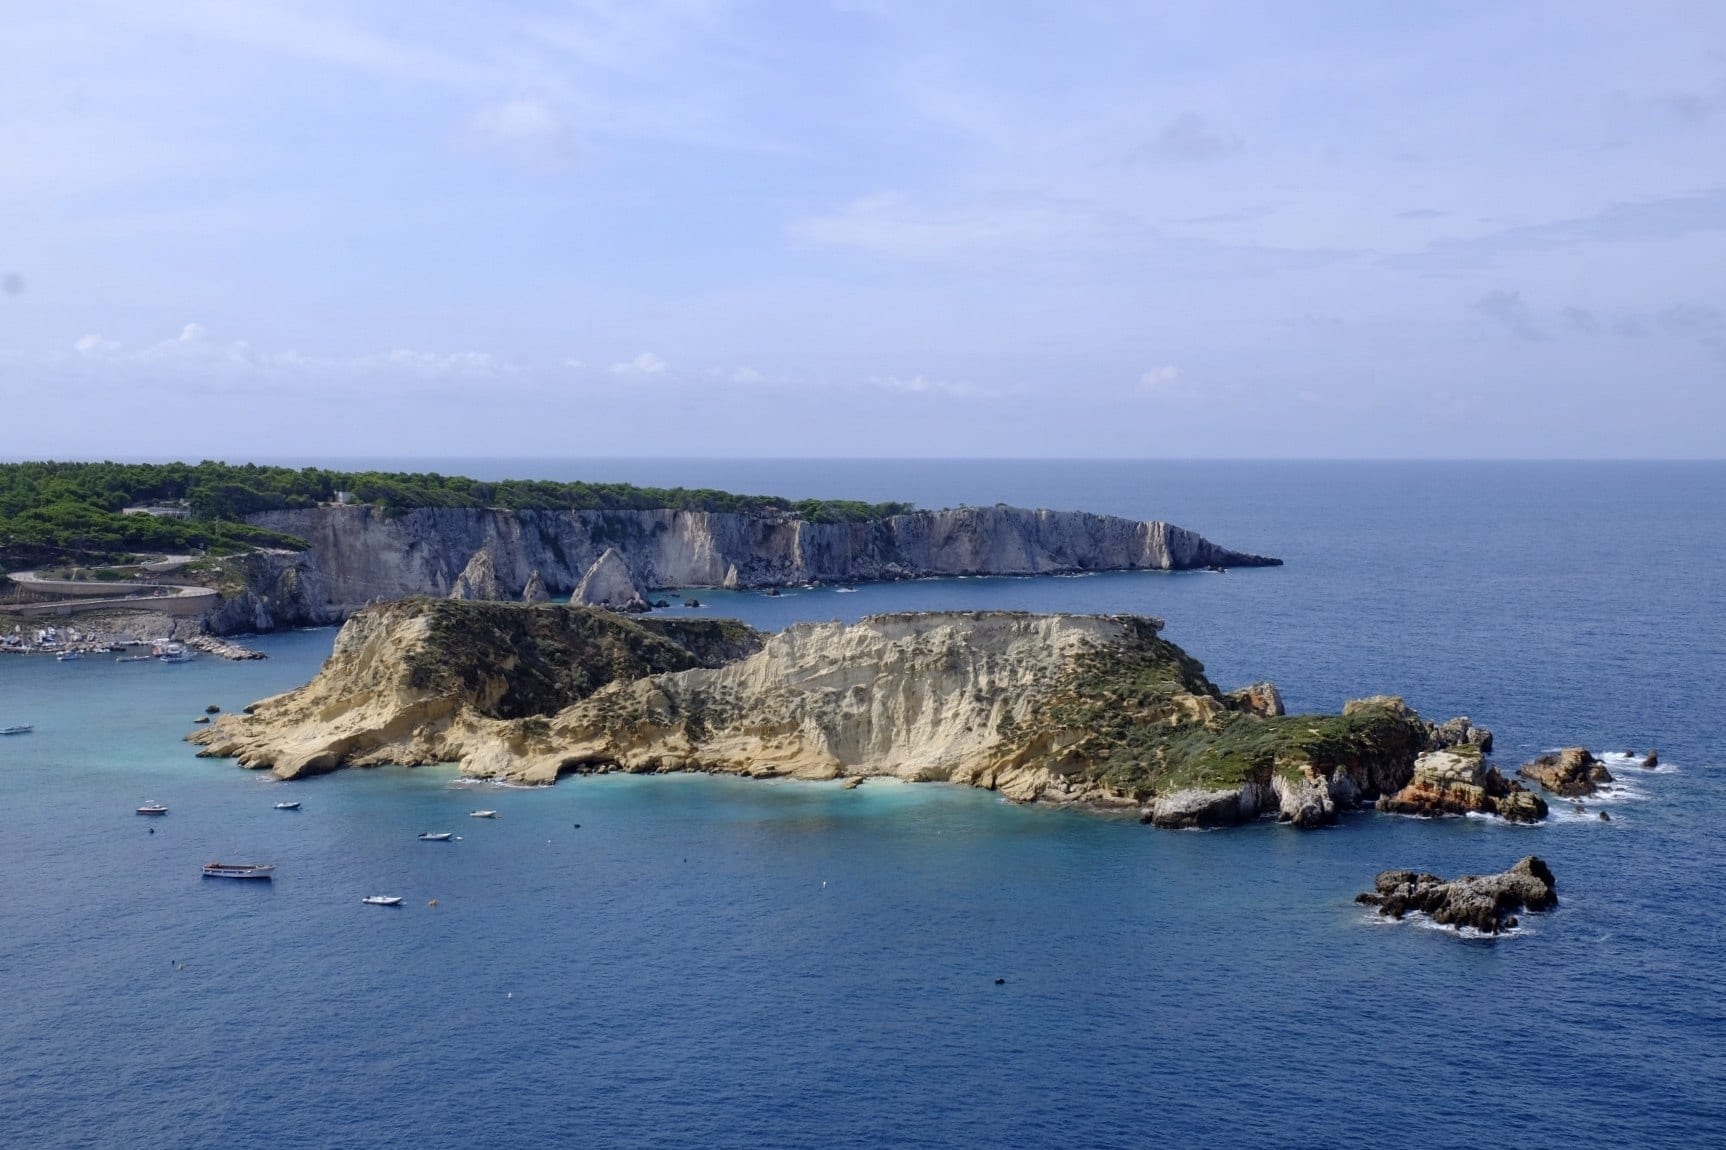 A view over two of the Tremiti Islands -- a rocky, uninhabited island, covered with sand and grass, rising out of the bright blue sea. Rowboats in the water in front of the island.